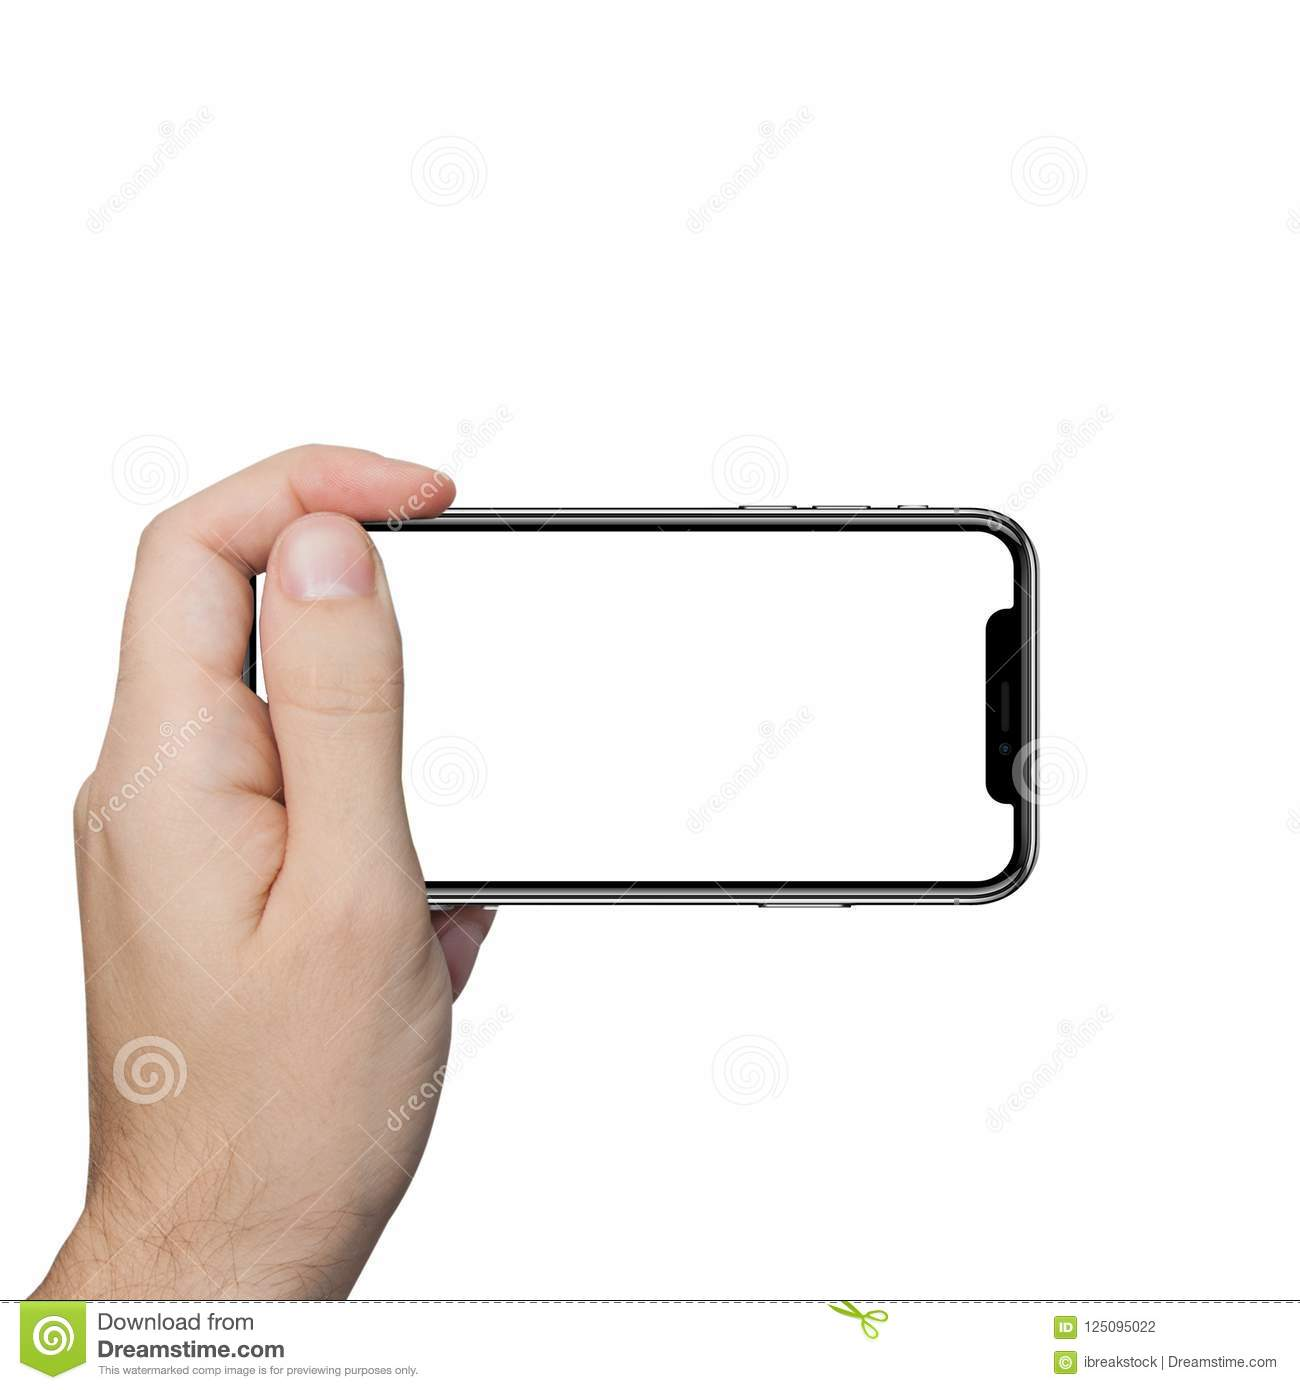 Isolated male hand holding the phone similar to iphone x tablet touch